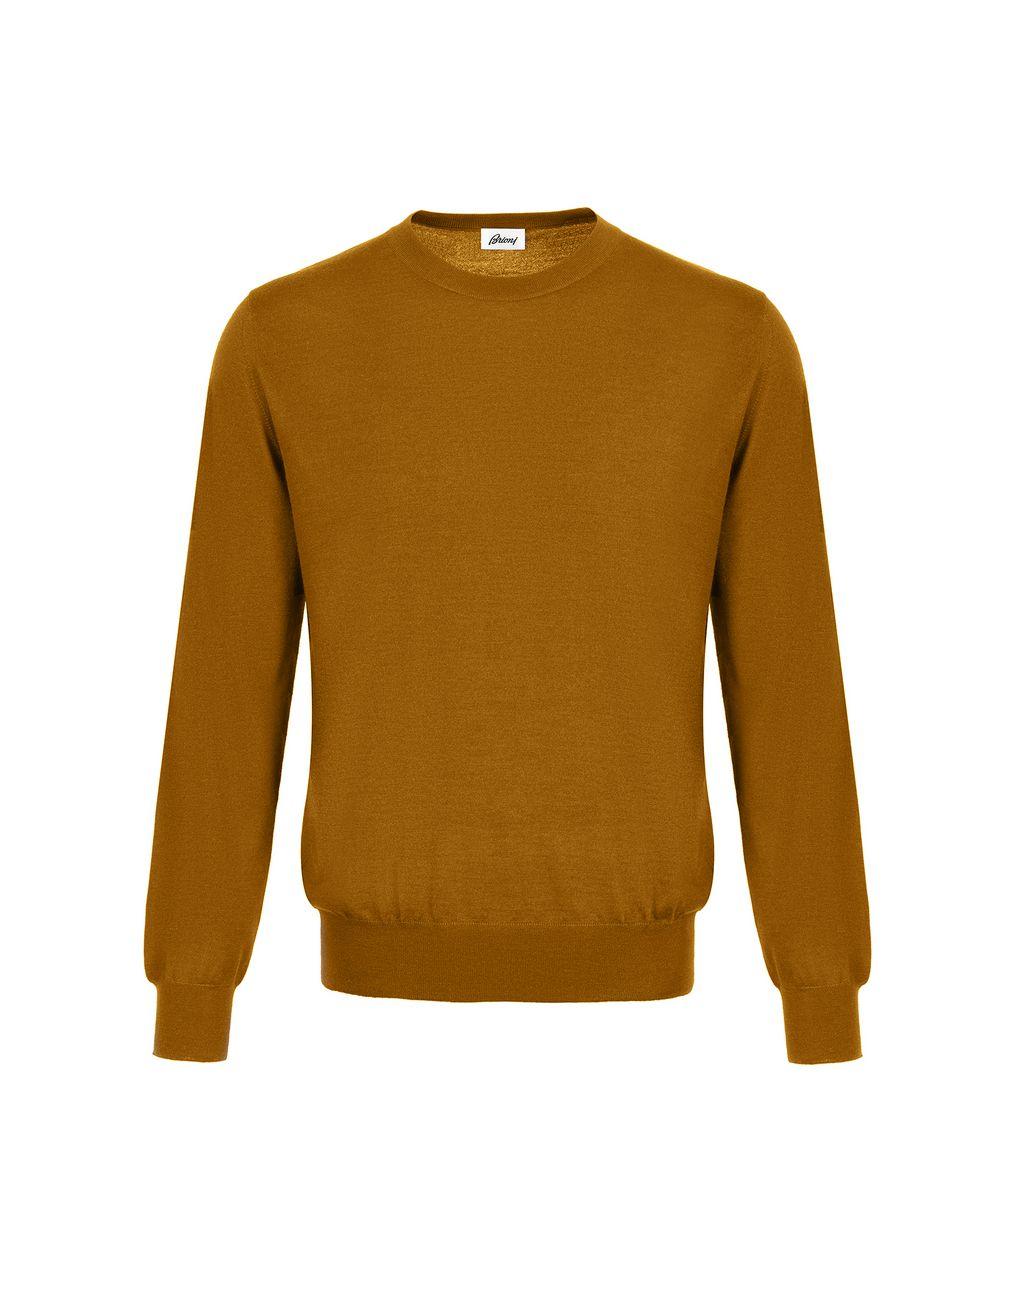 BRIONI Mustard Sweater Knitwear [*** pickupInStoreShippingNotGuaranteed_info ***] f